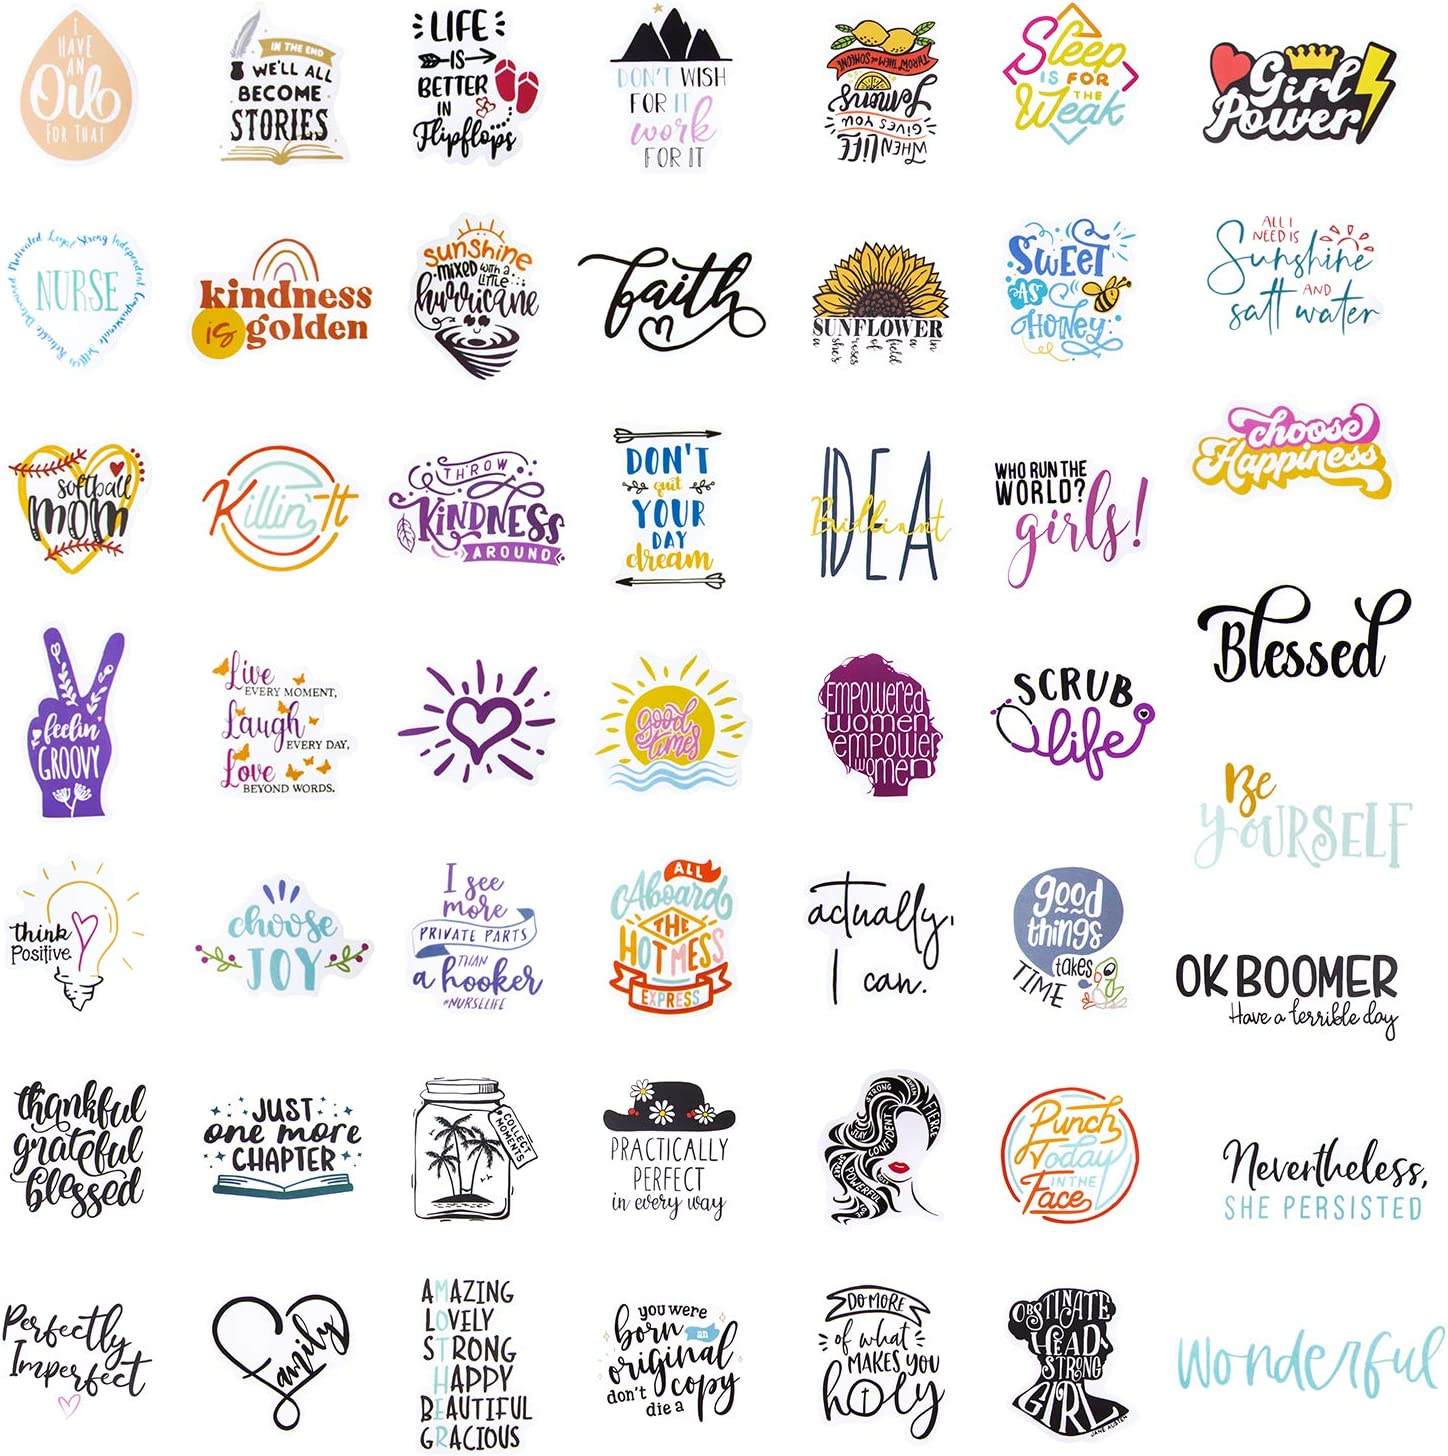 Aesthetic Stickers Reward Motivational Inspirational Stickers Decal for Students and Teachers, Waterproof Vinyl Stickers Skateboard Stickers Durable Laptop Stickers for Teens